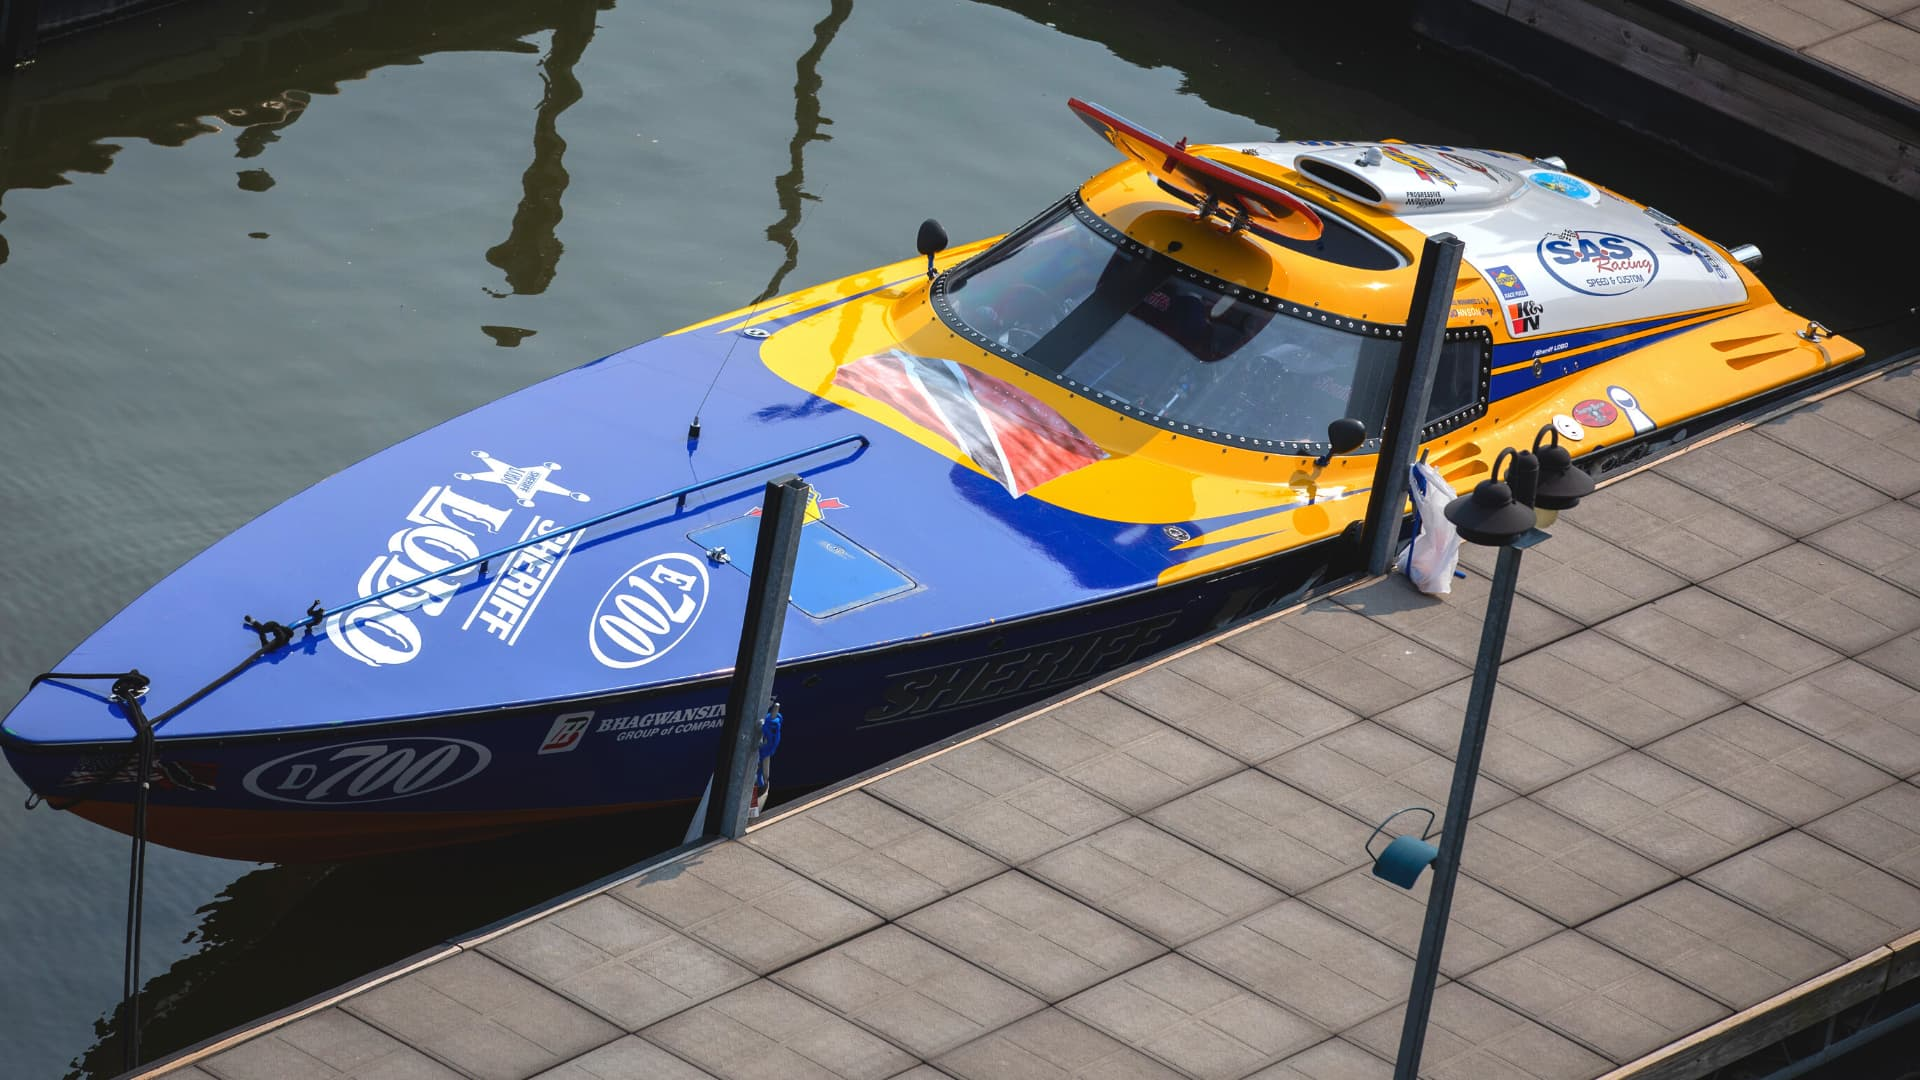 Blue and yellow powerboat